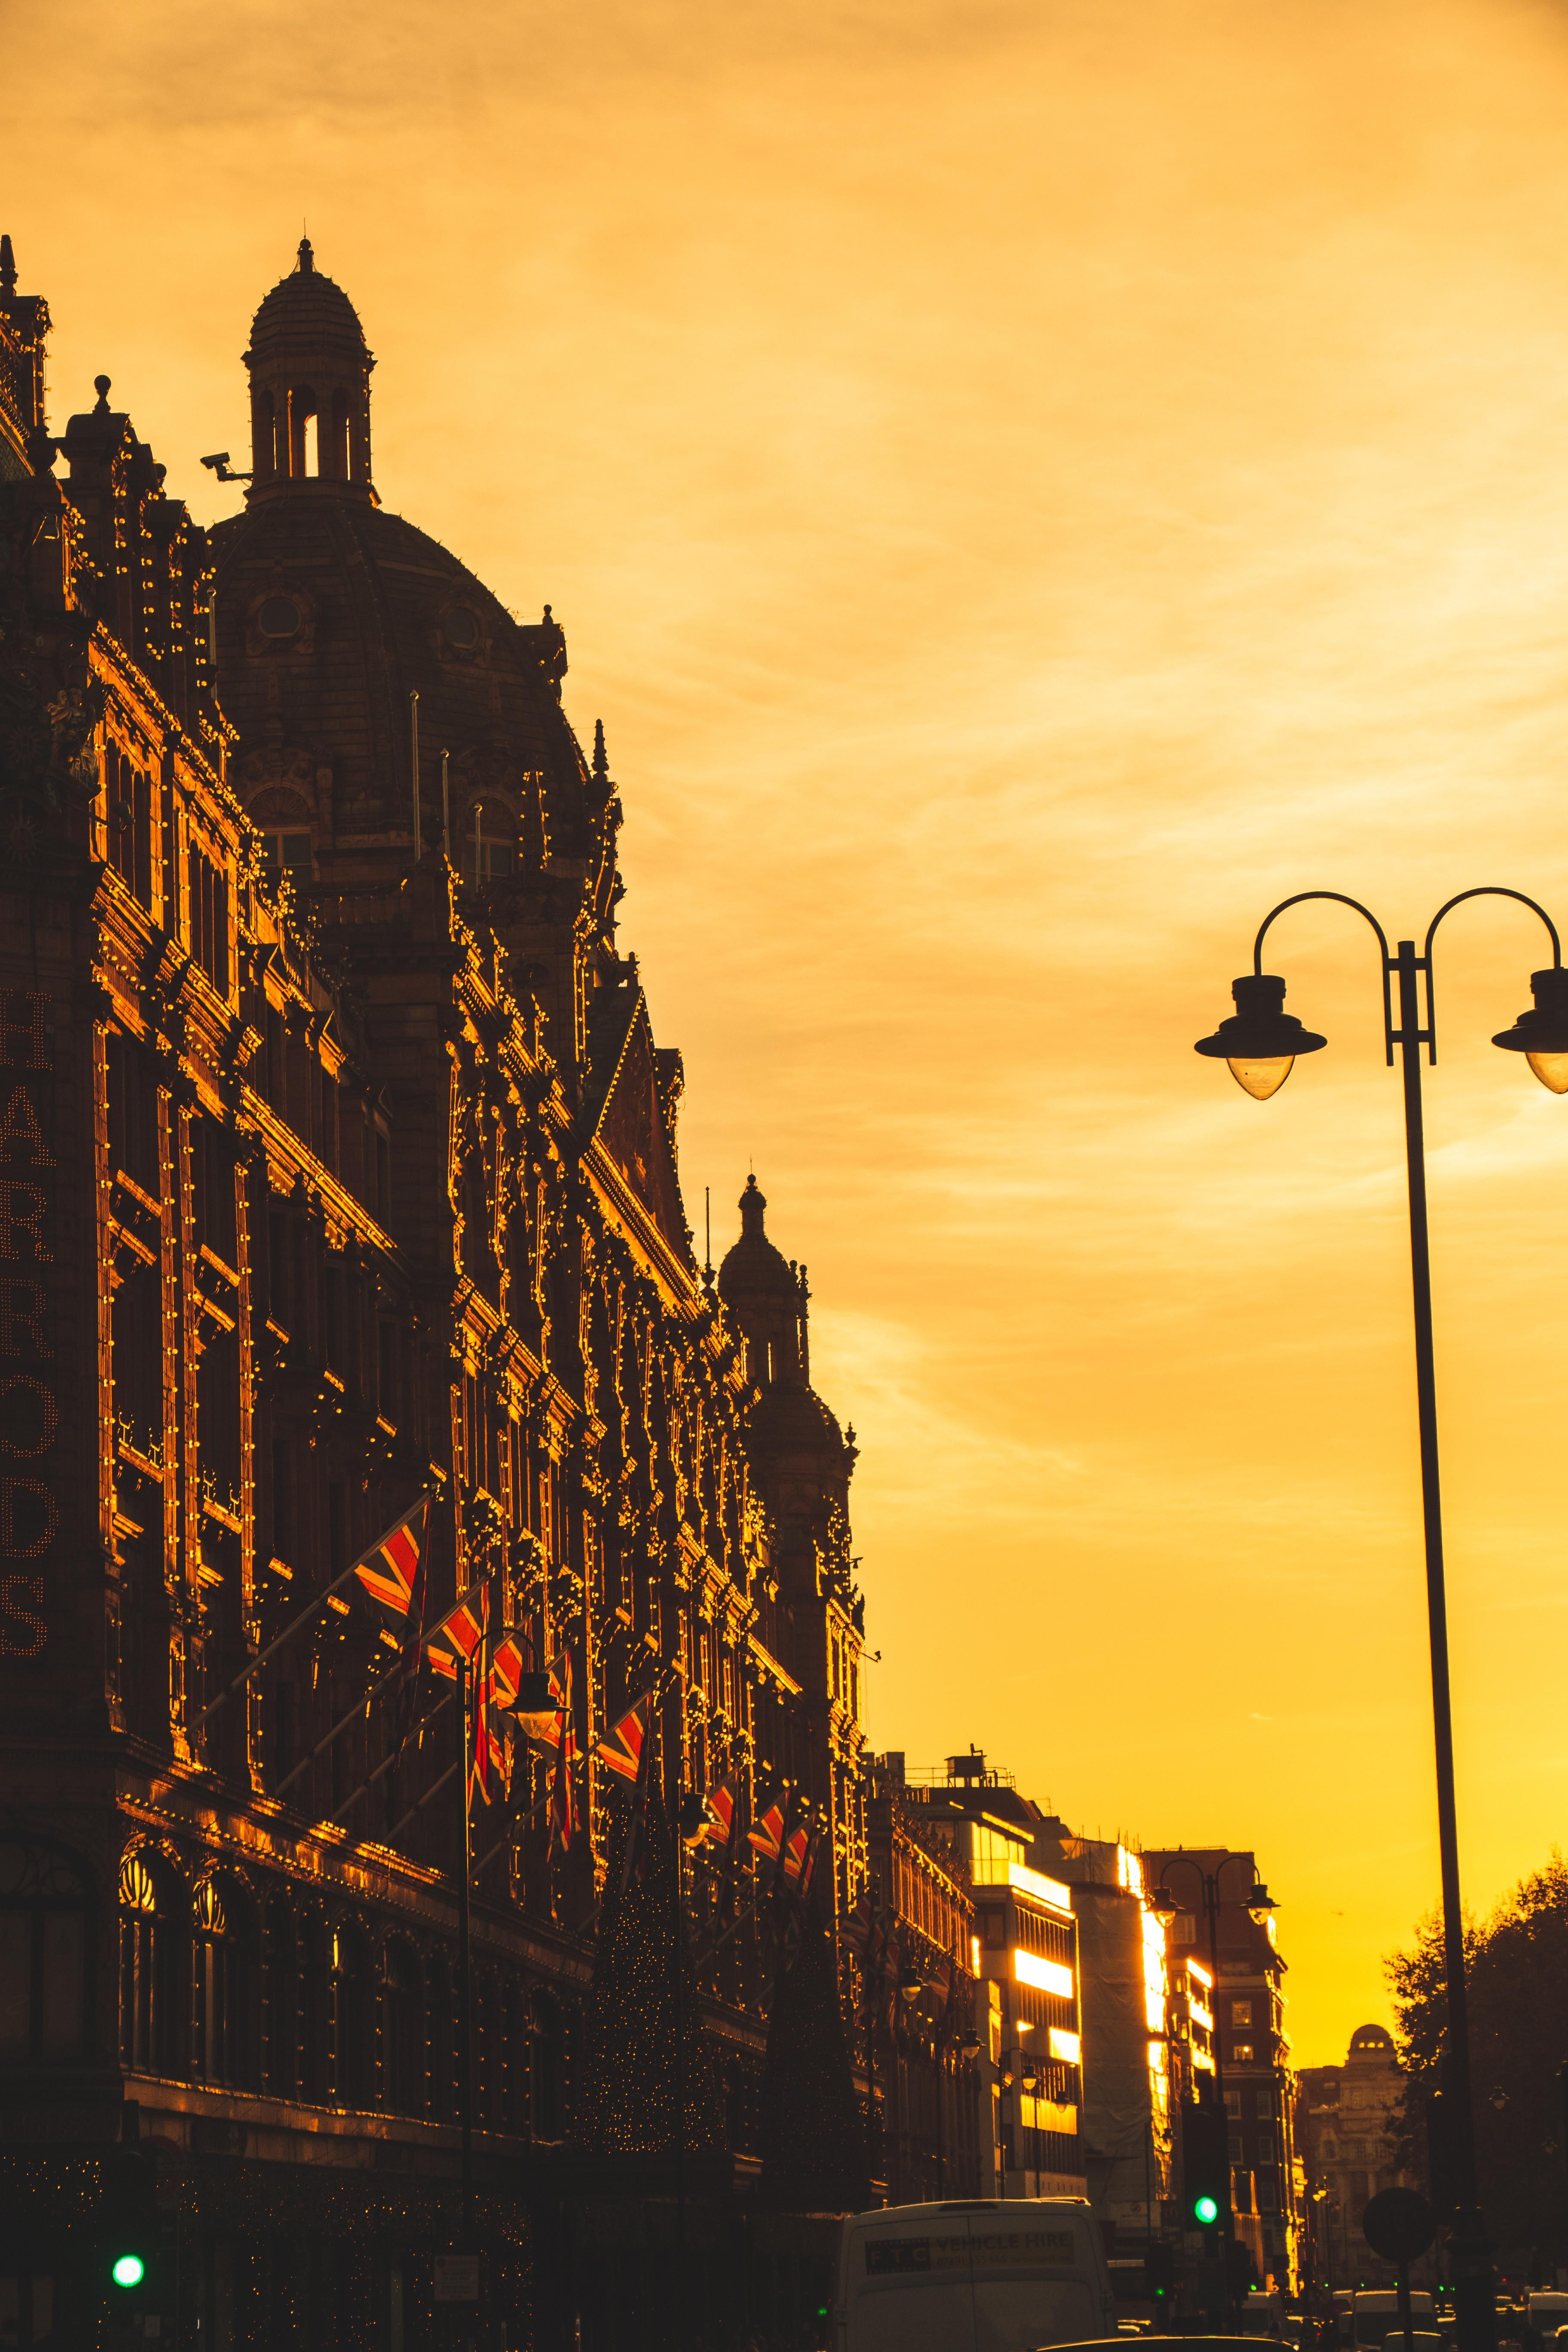 ITAP of London at golden hour | Best New Photography in 2019